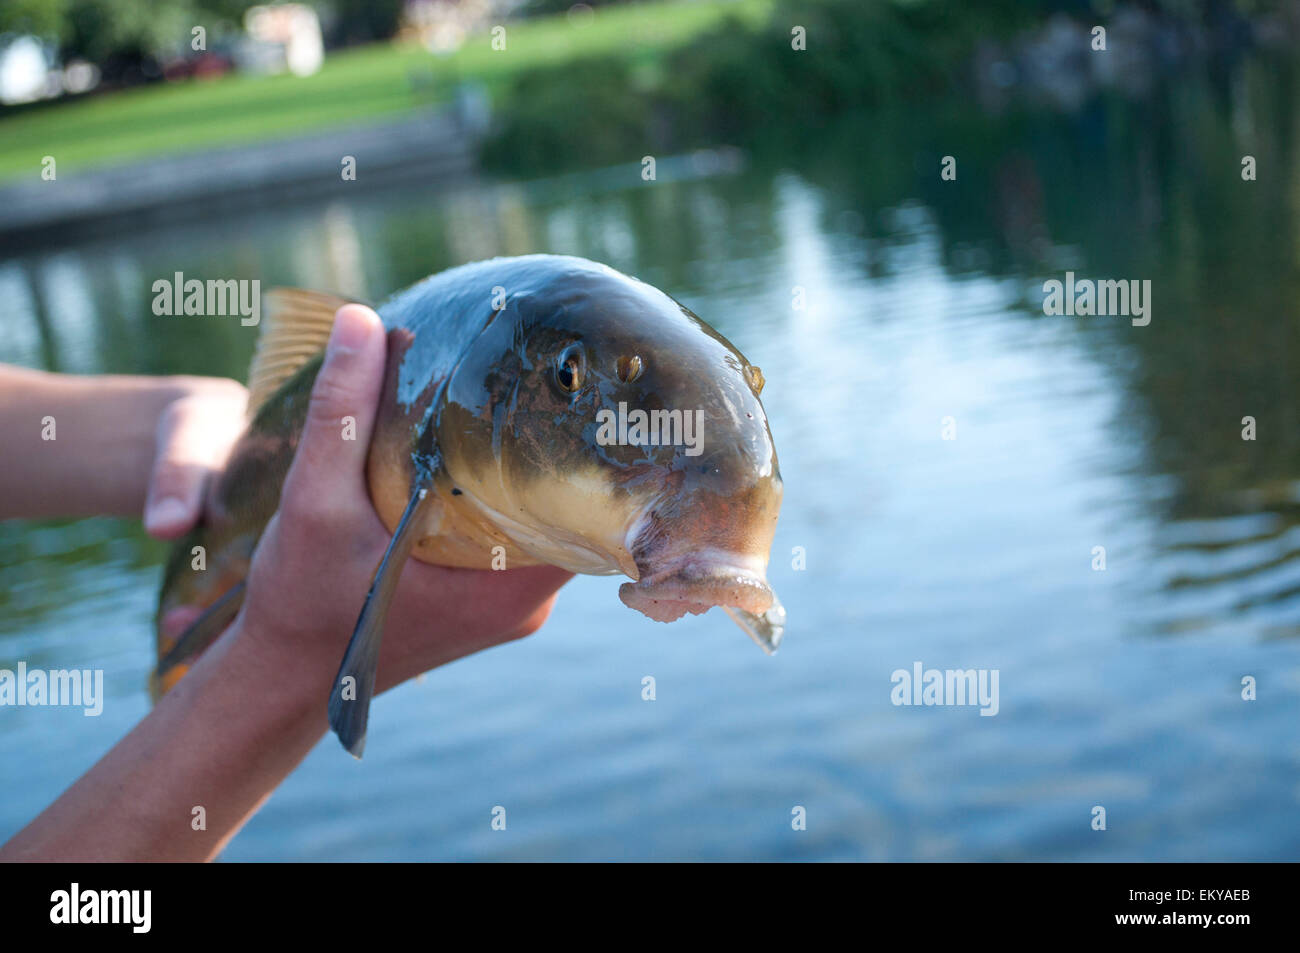 Fish photographed at the Riverfront Park in Spokane, Spokane County, WA, USA. - Stock Image